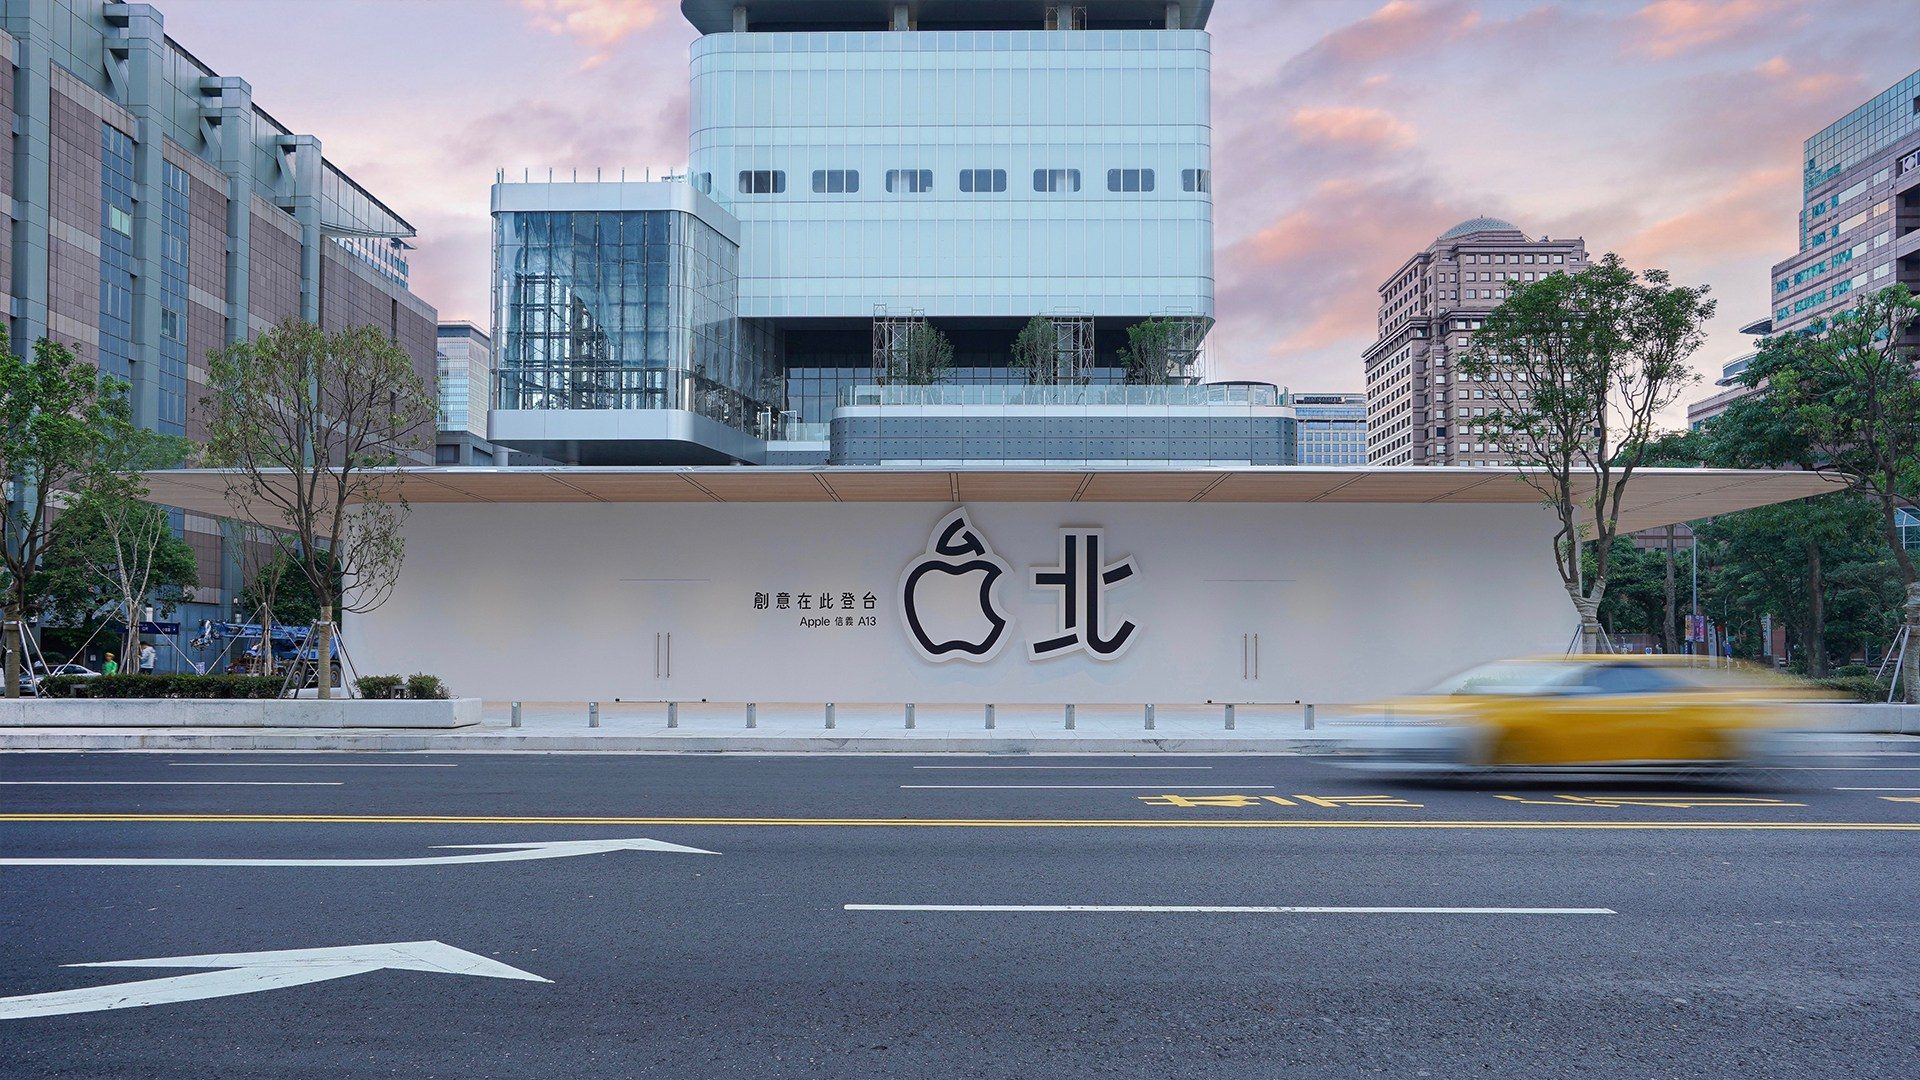 Apple will soon open a second store in Taiwan